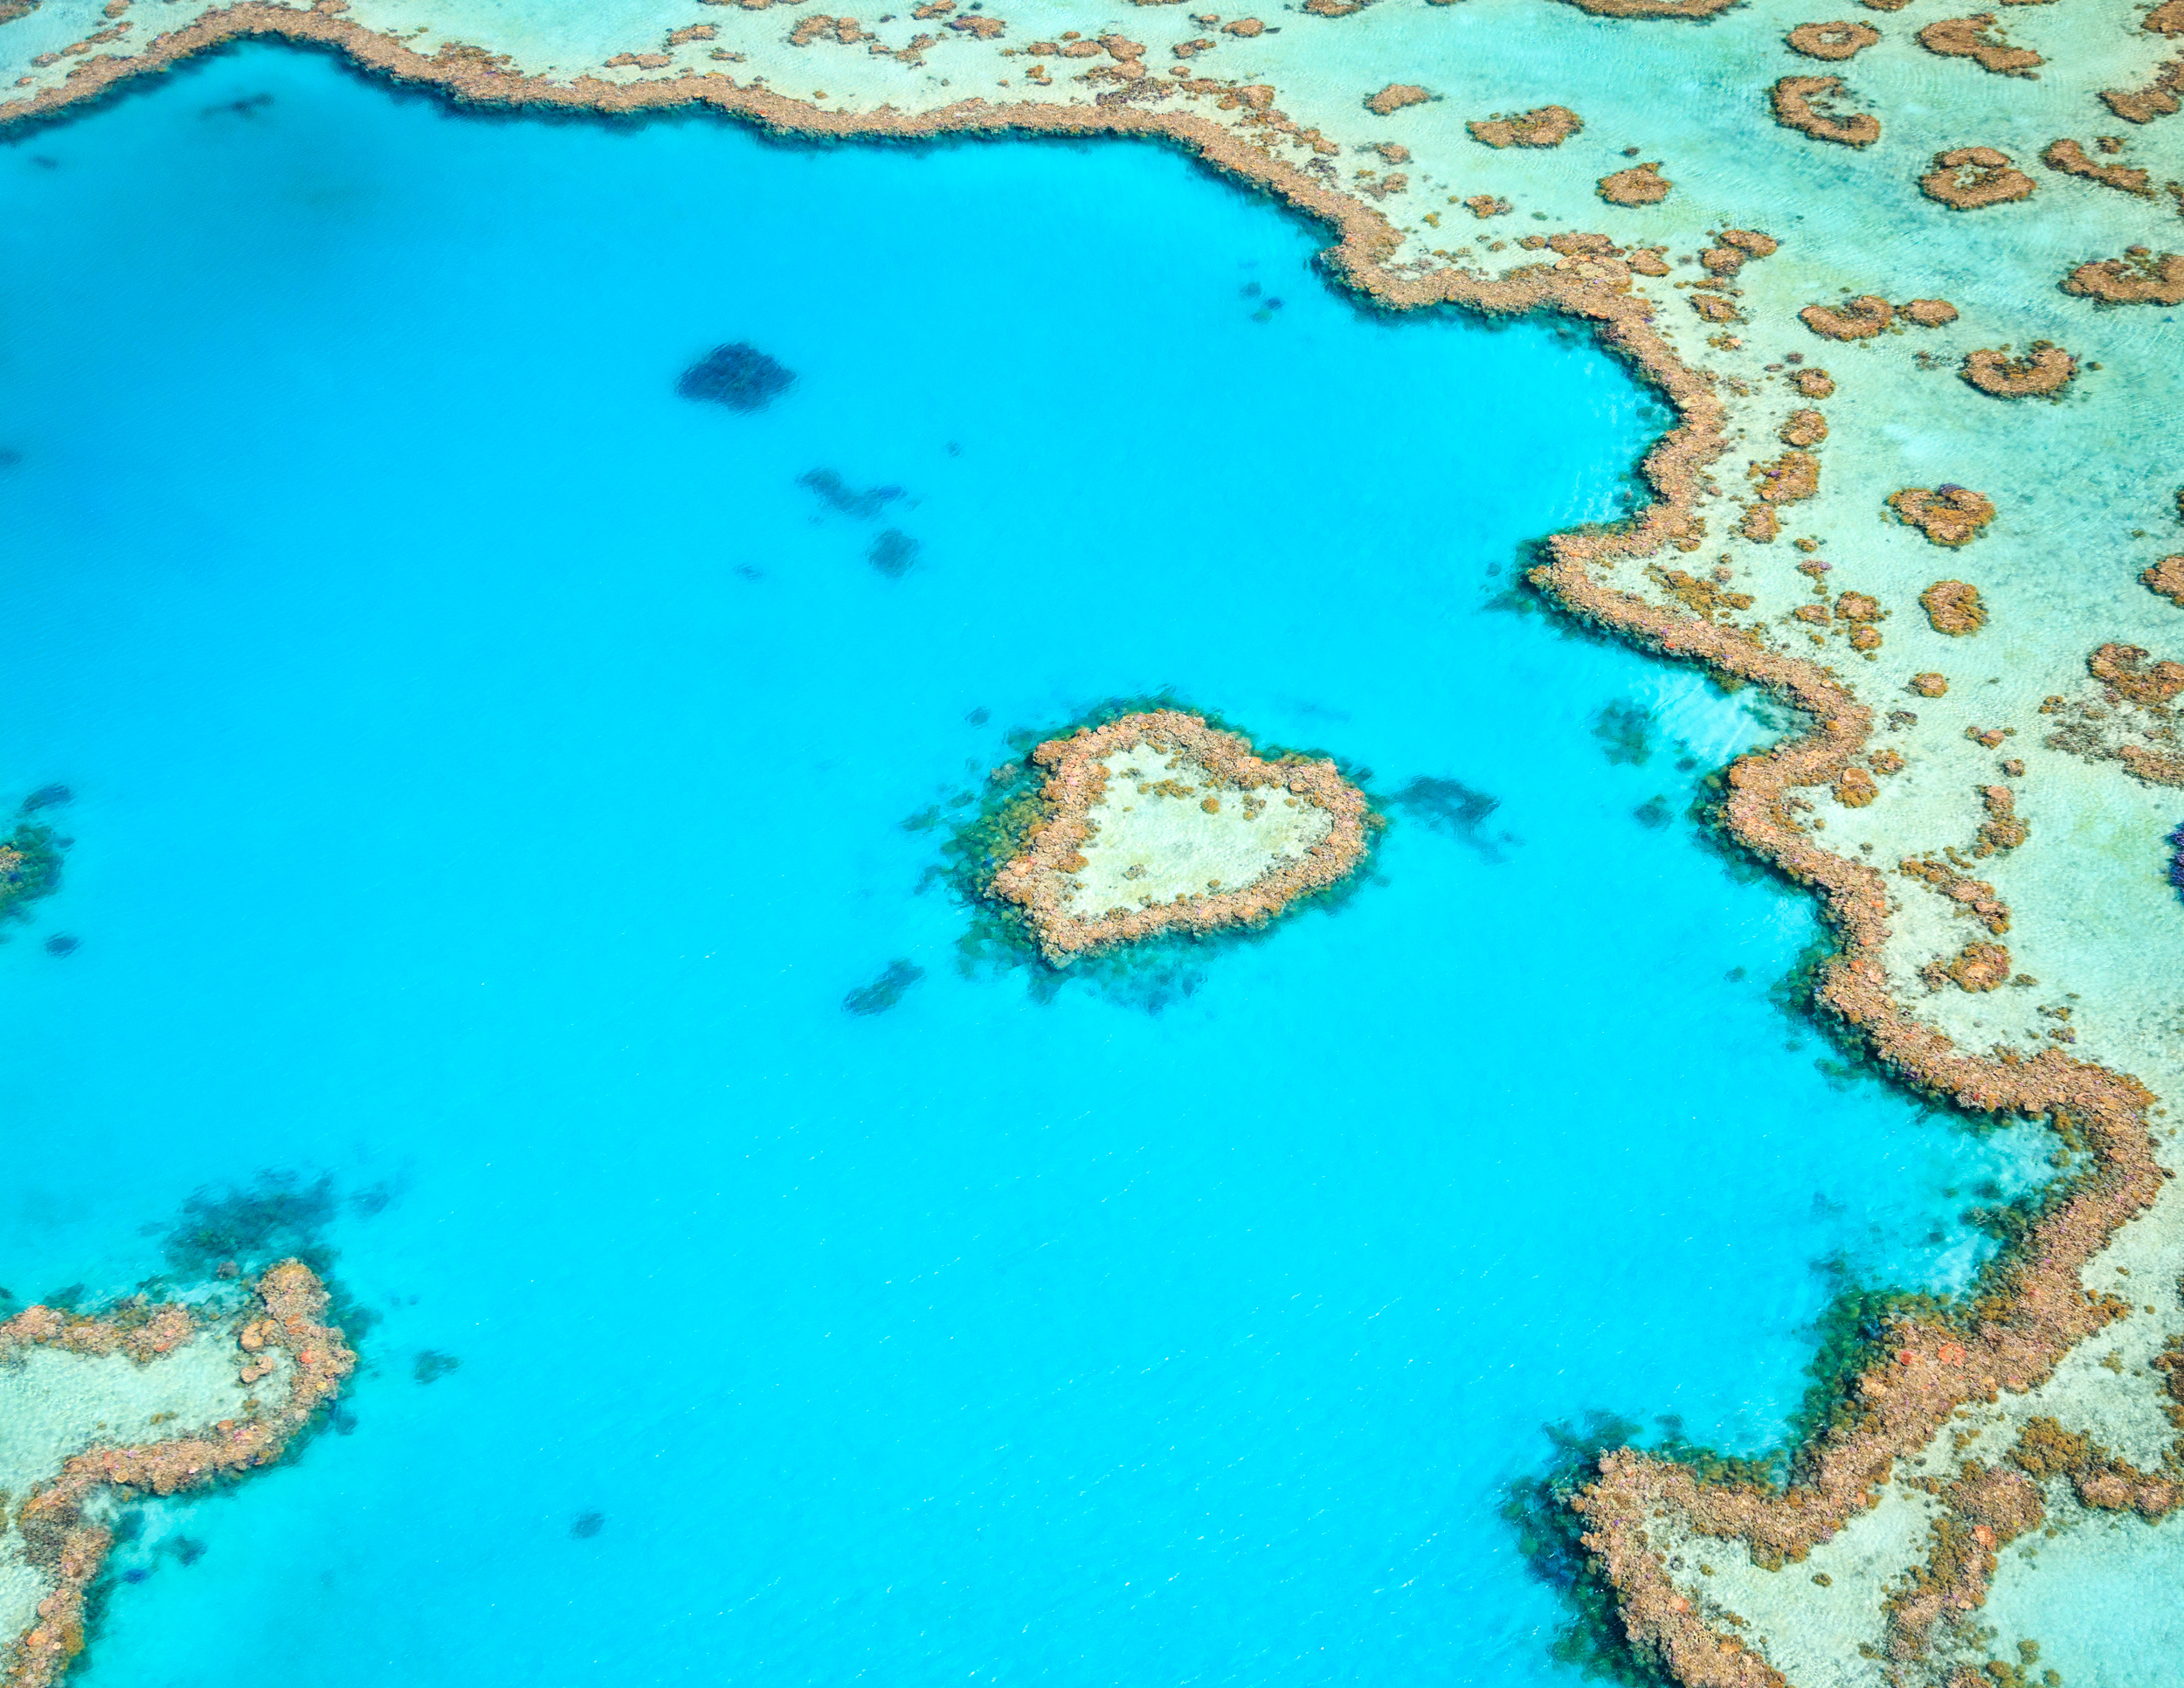 Best time to visit the Great Barrier Reef